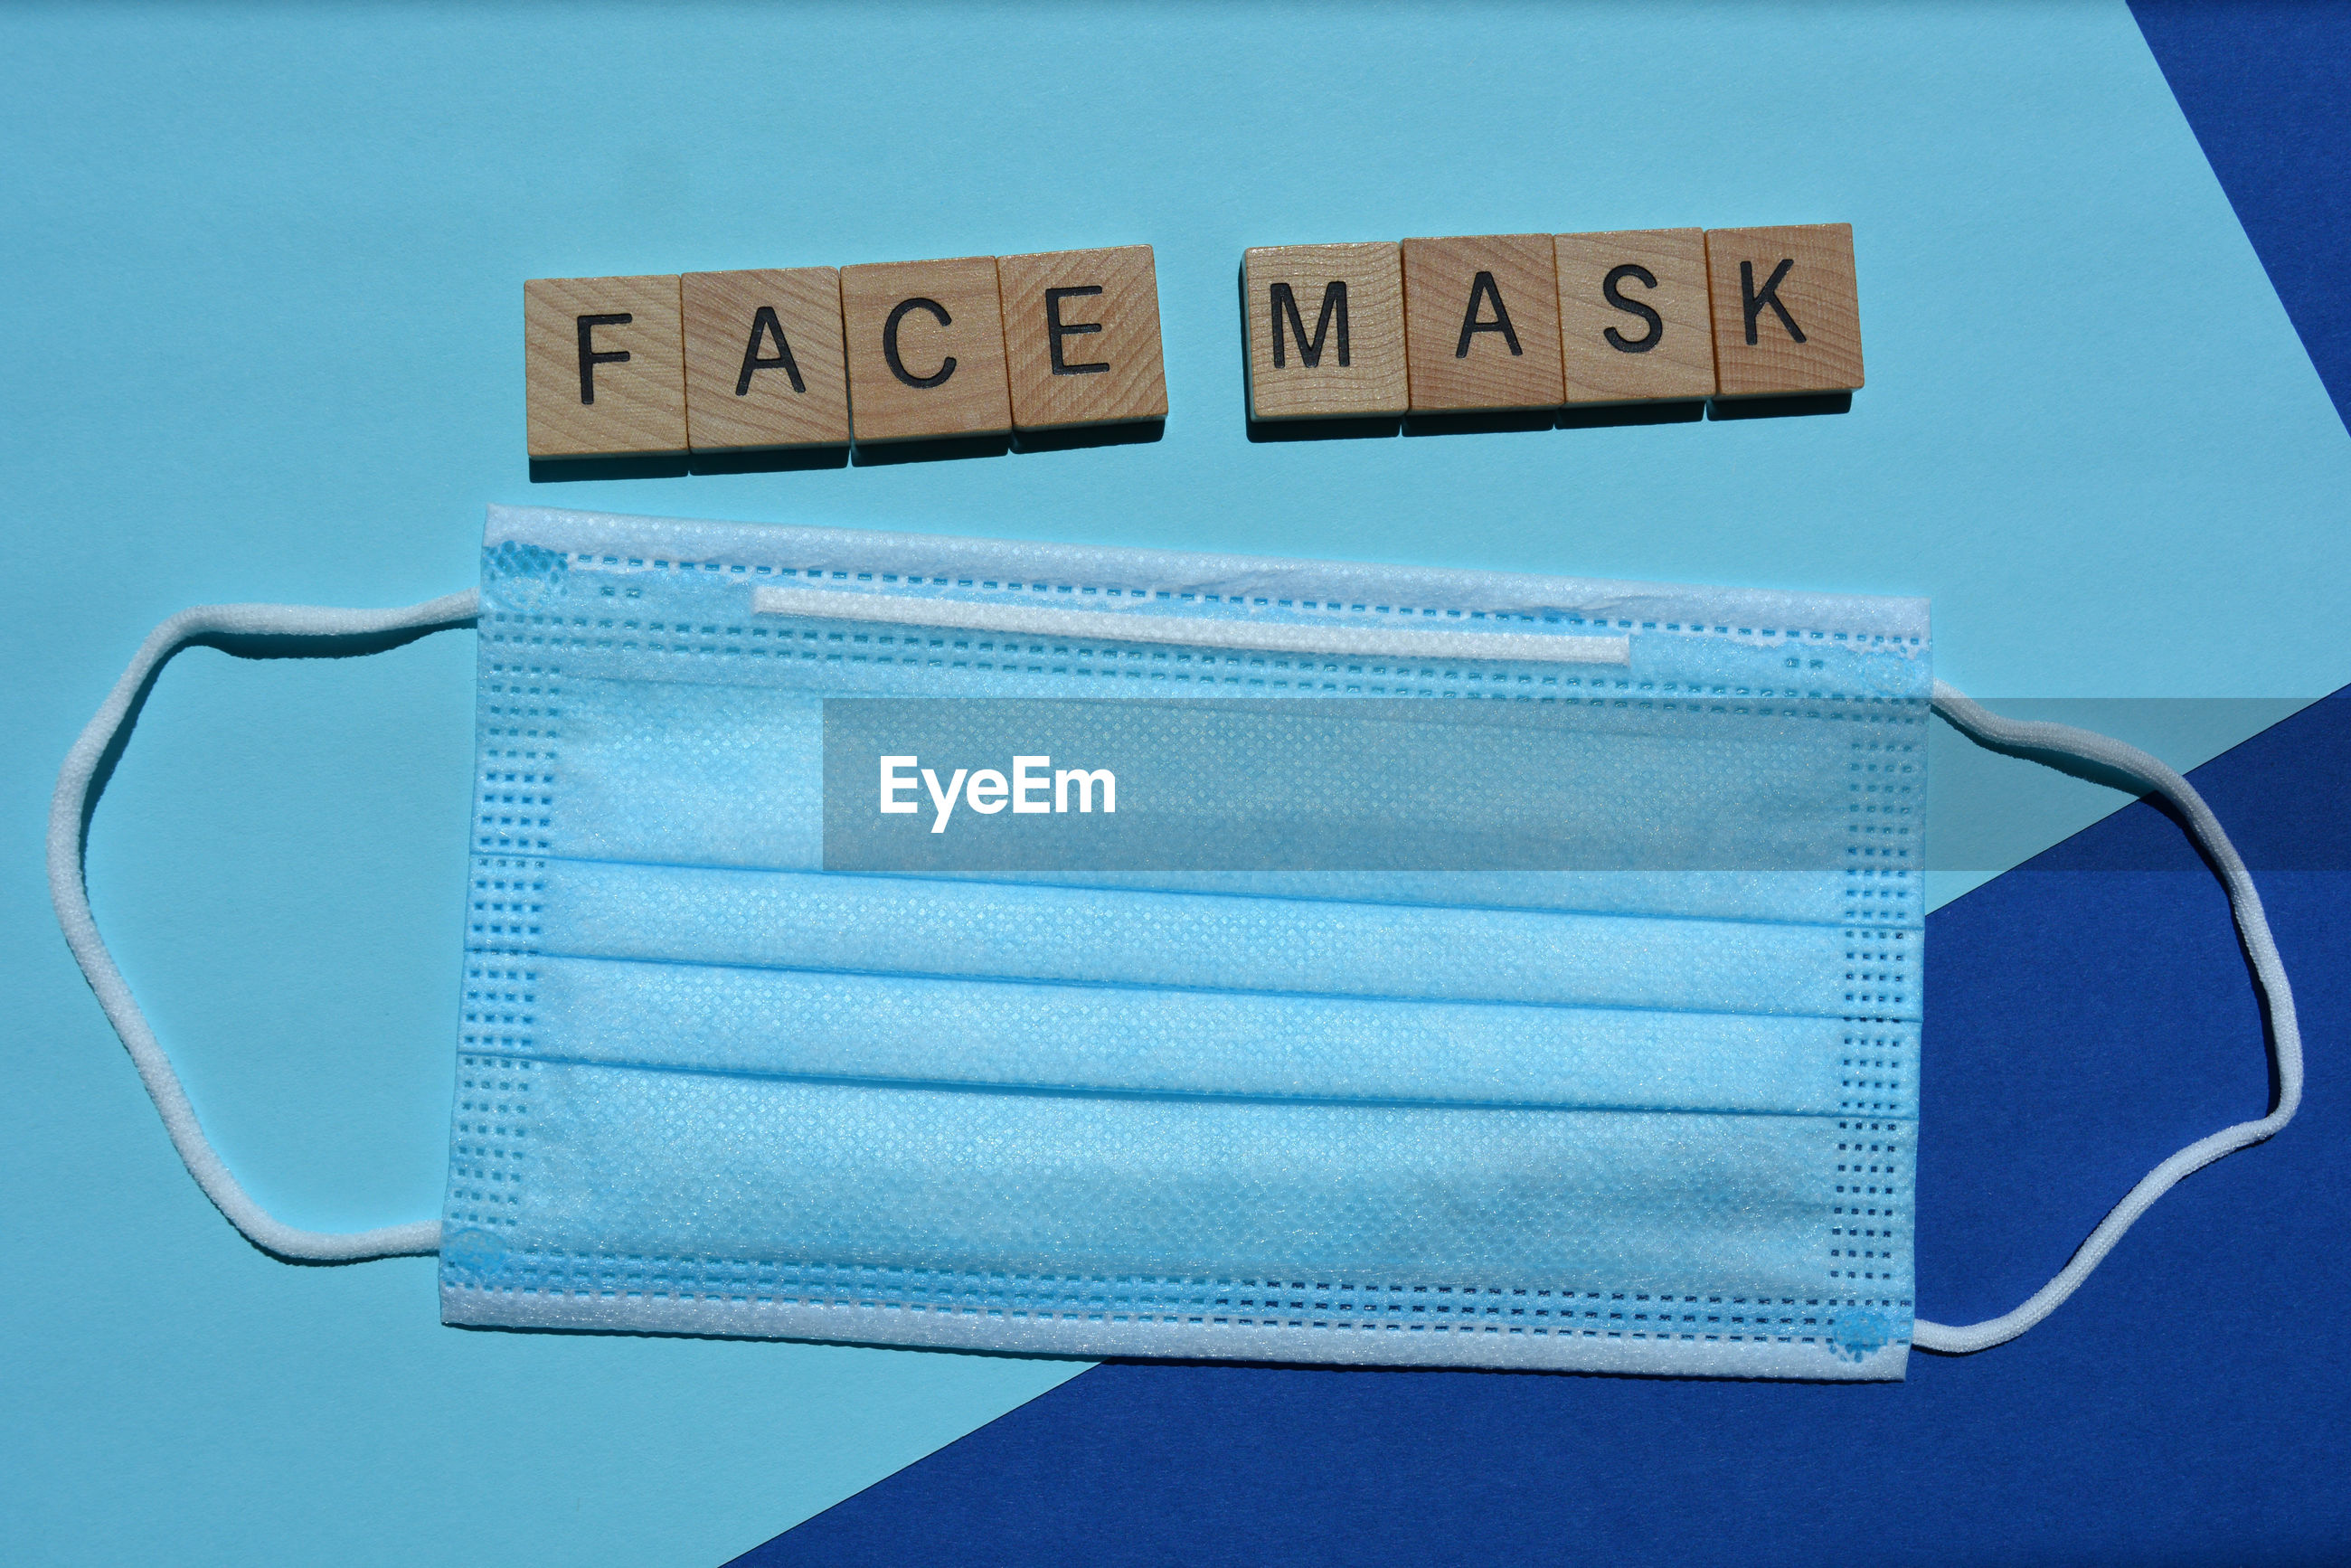 Face mask, word and a disposable 3 ply face mask with elastic ear loops isolated on blue background